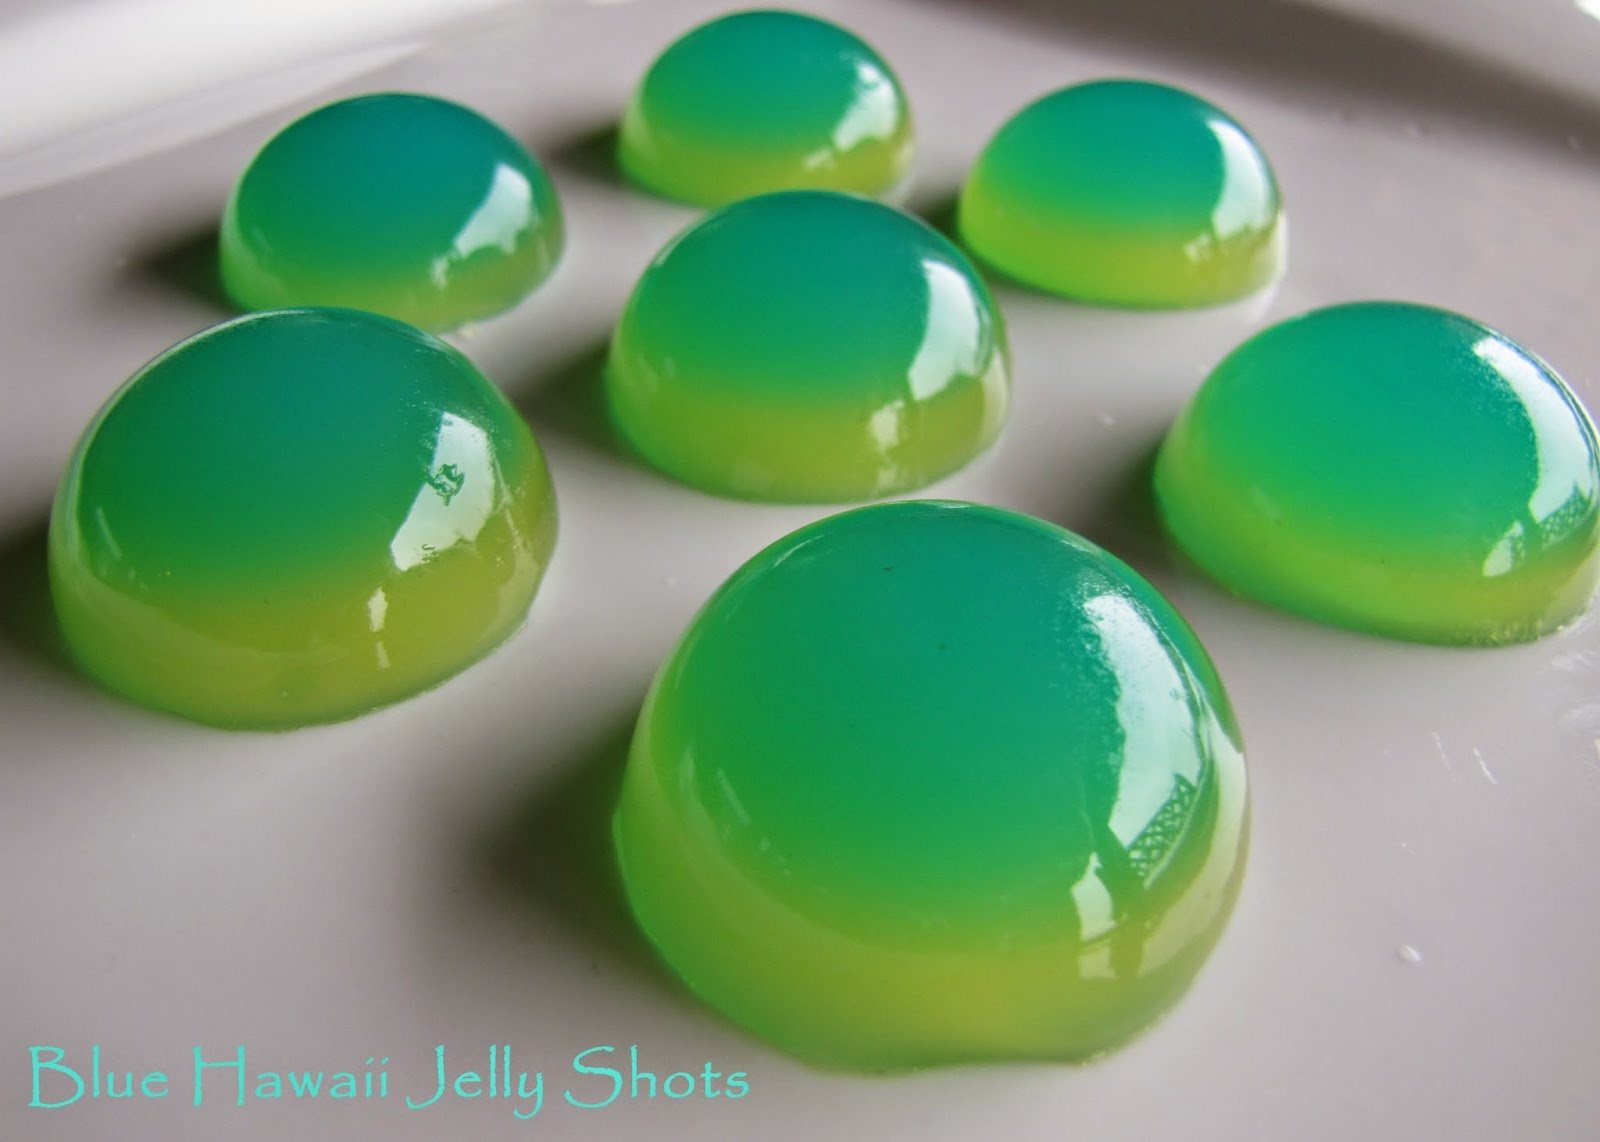 Blue Hawaii Jelly Shots Recipe — Dishmaps